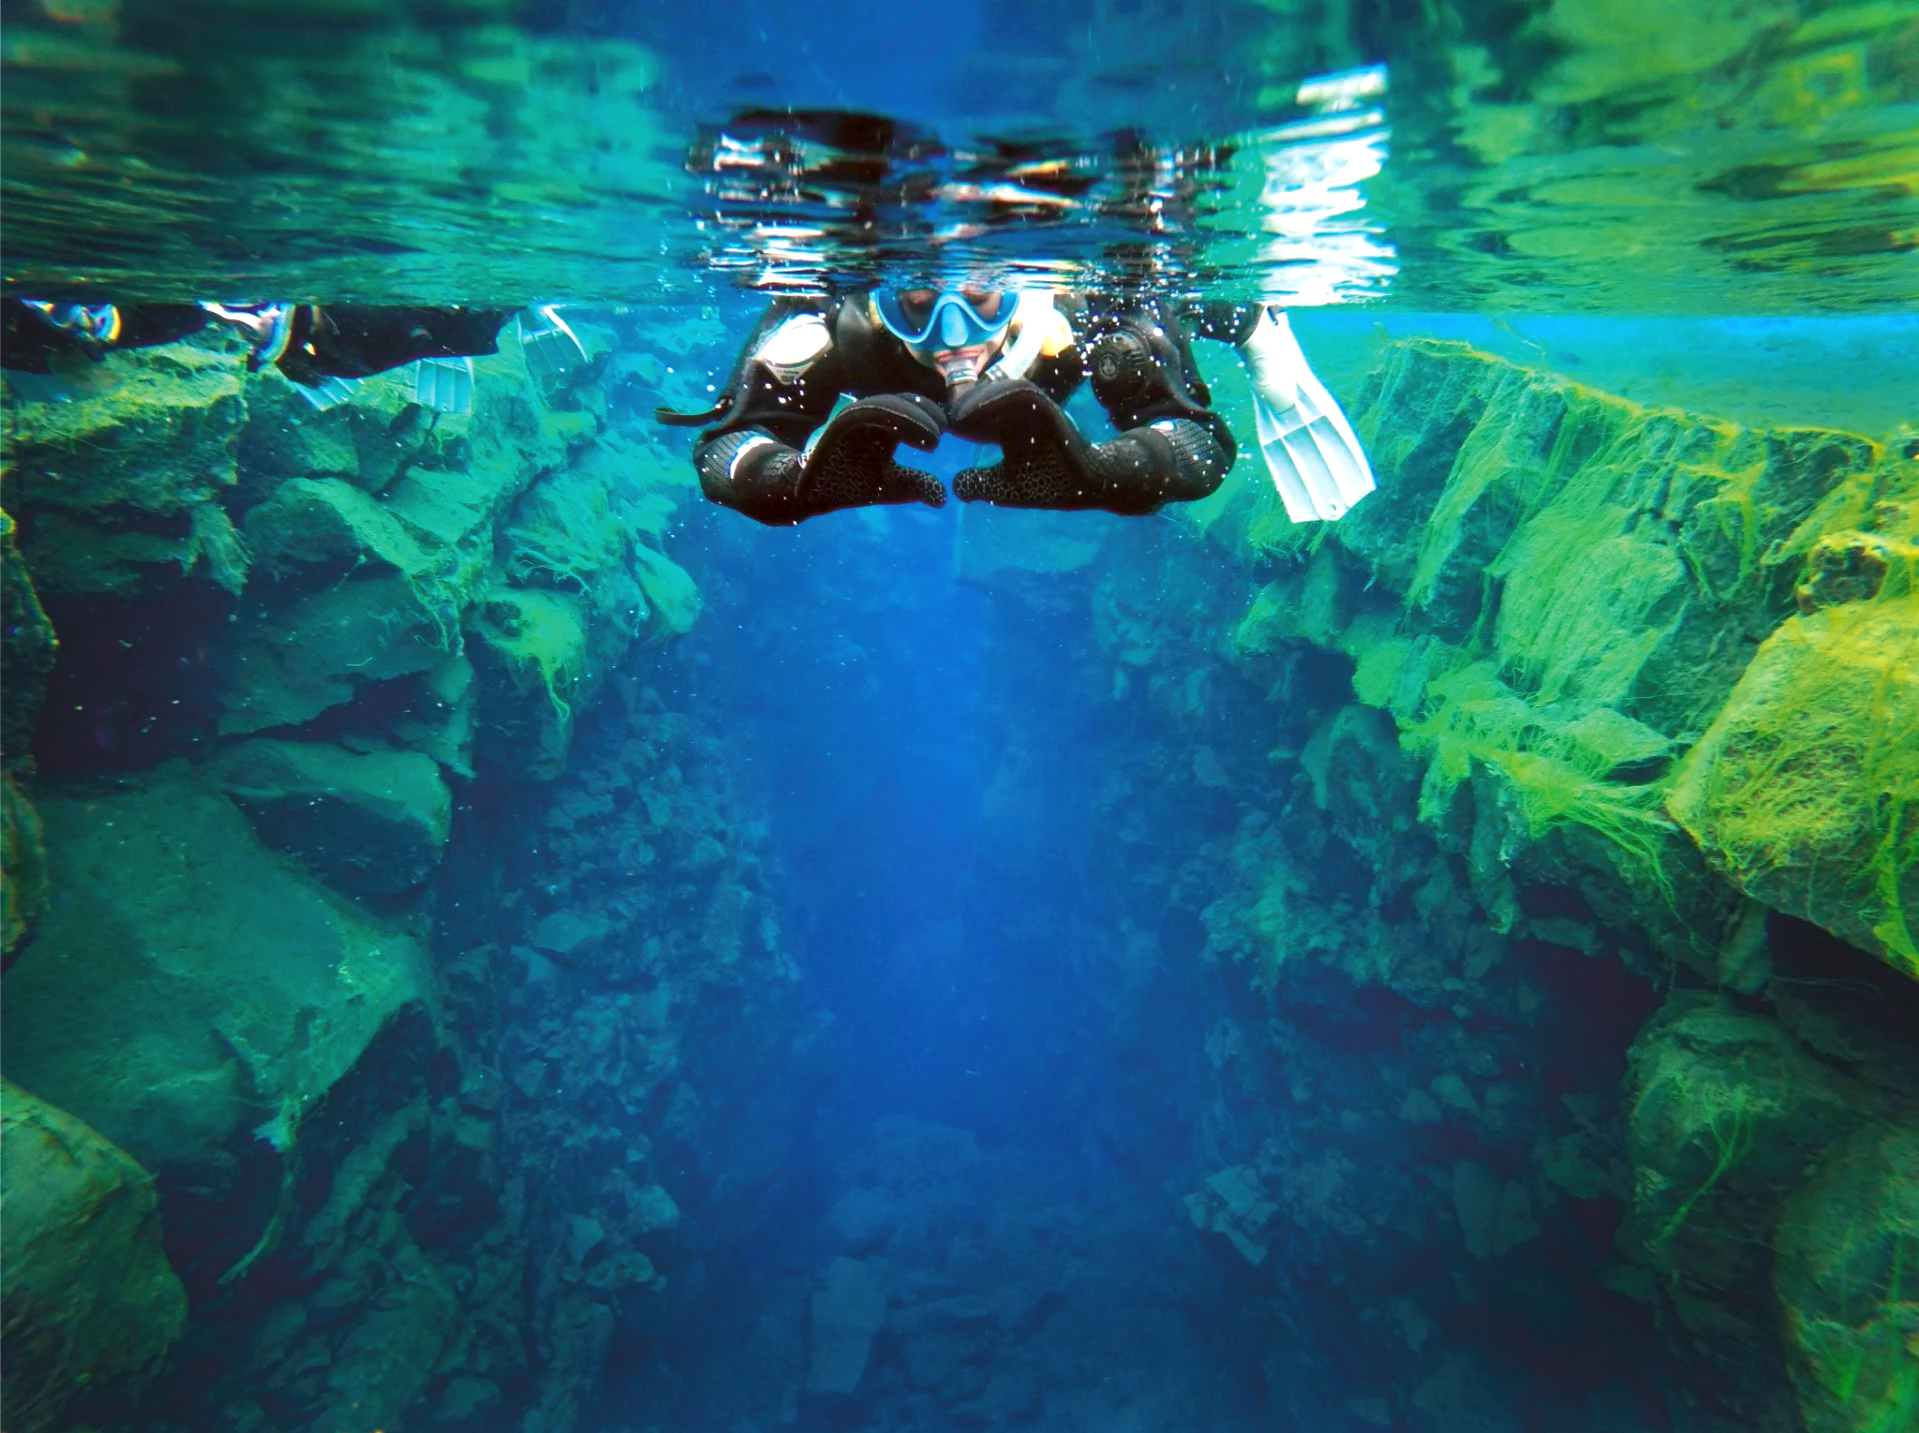 Excellent 3 Hour Snorkeling Between Continents Tour in Silfra with Free Underwater Photos & Snacks